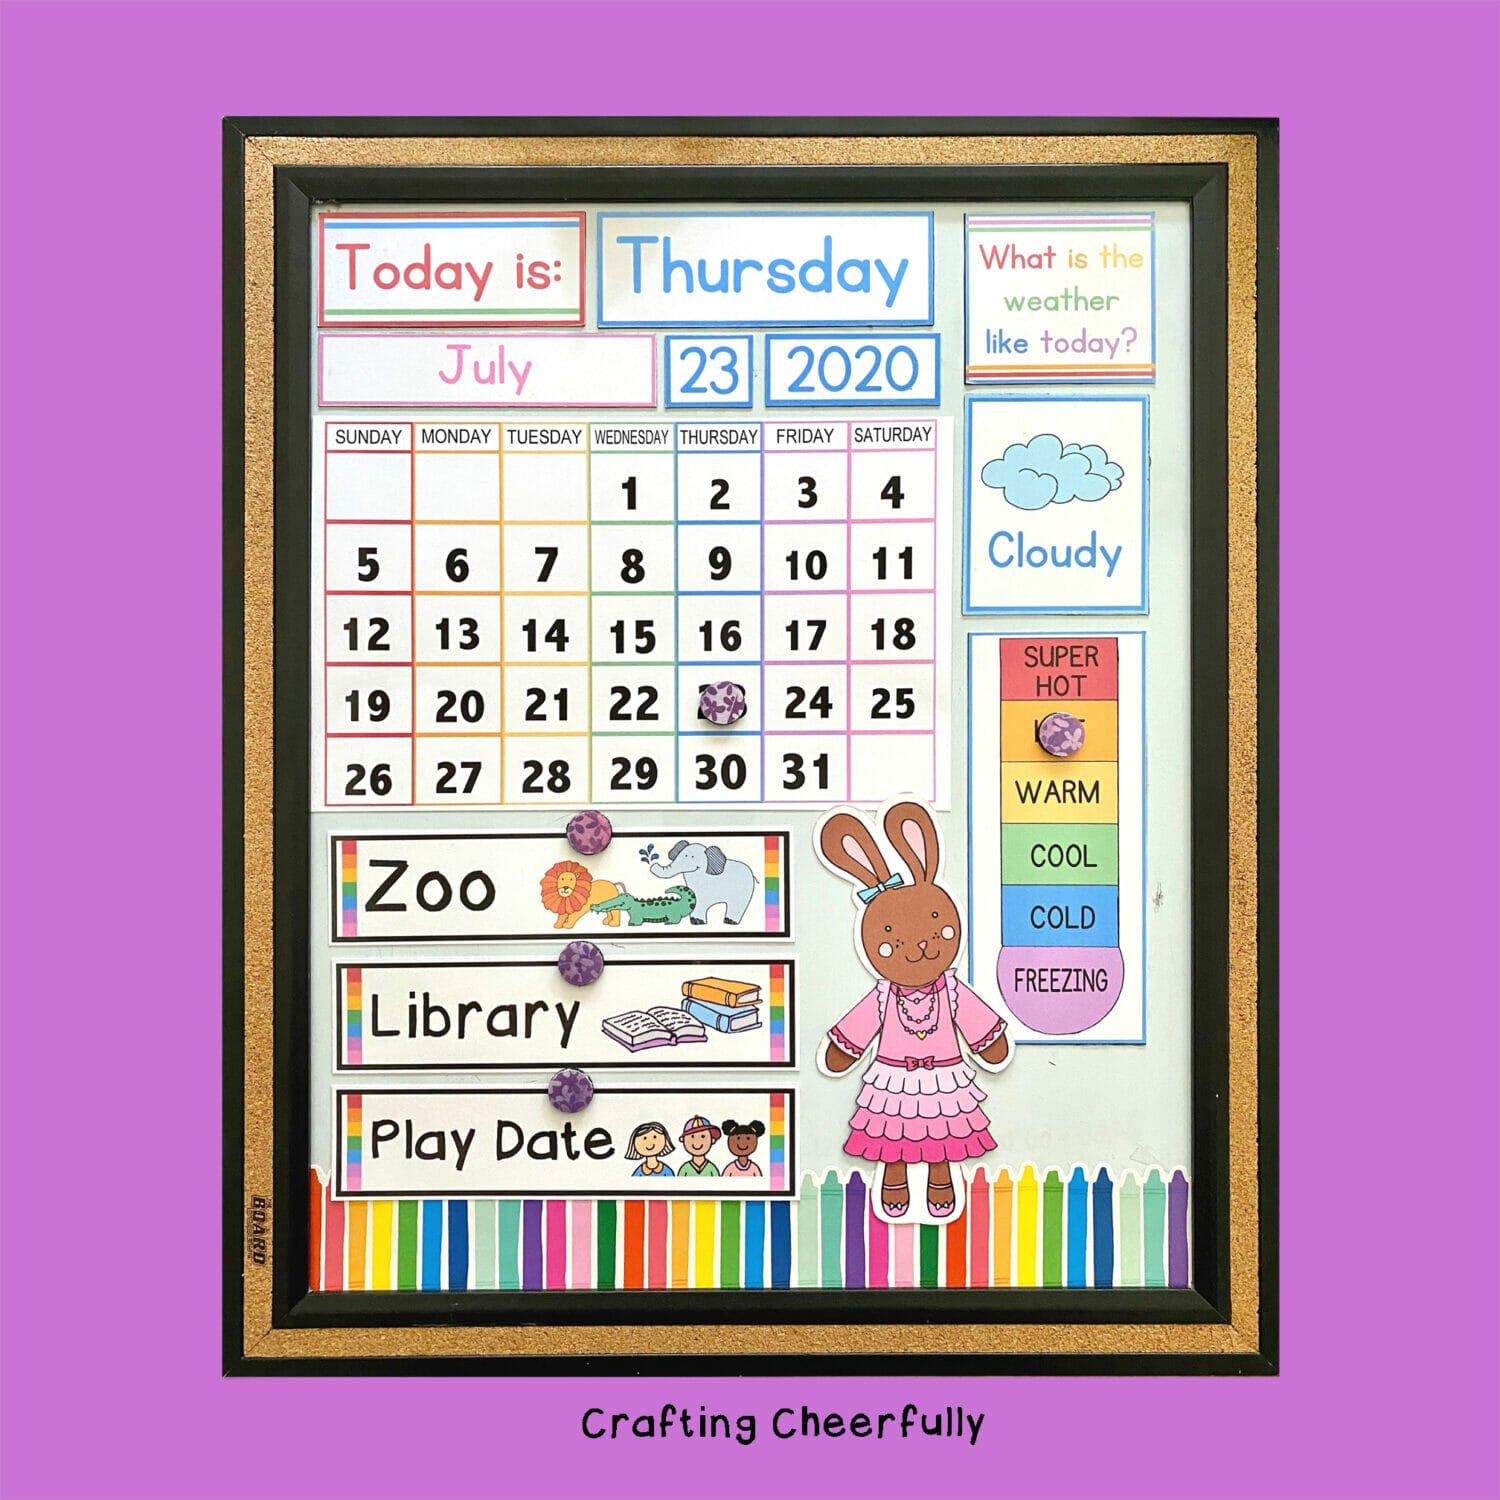 Colorful and happy Children's Calendar on a purple background.